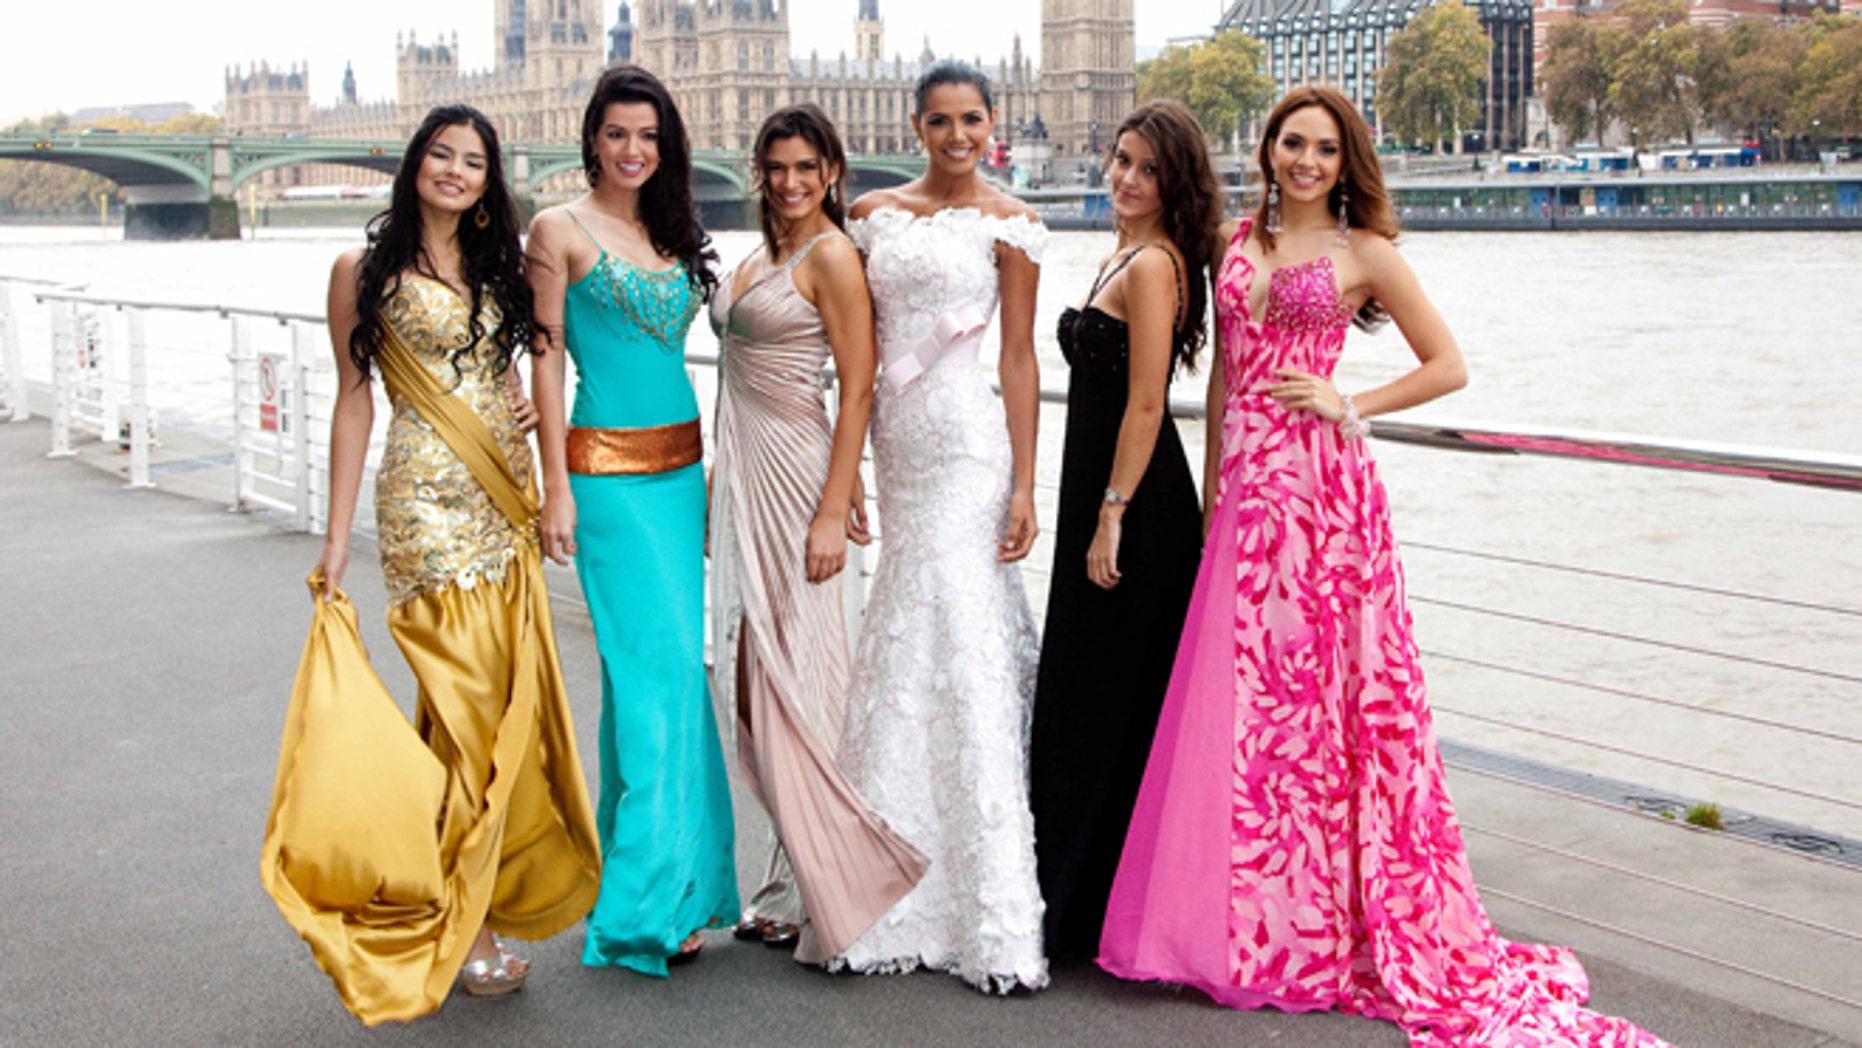 LONDON, ENGLAND - OCTOBER 31:  In this handout provided by Miss World Ltd,  (L-R) Miss Argentina Antonella Kruger, Miss Brazil Juceila Bueno, Miss Chile Gabriela Pulgar Luco, Miss Venuzuela Ivian Sarcos and Miss Columbia Monica Restrepo pose beside the Thames during a photocall as part of the Miss World 2011 UK Tour, on October 31, 2011 in London, United Kingdom. The tour celebrates Miss World's 60th birthday. The final of the competition will take place in Earls Court, London on Sunday 6th of November. (Photo by Ian Jones /Miss World Ltd via Getty Images)(Handout photograph from Miss World Ltd, only to be used in conjunction with Miss World Editorial Material)